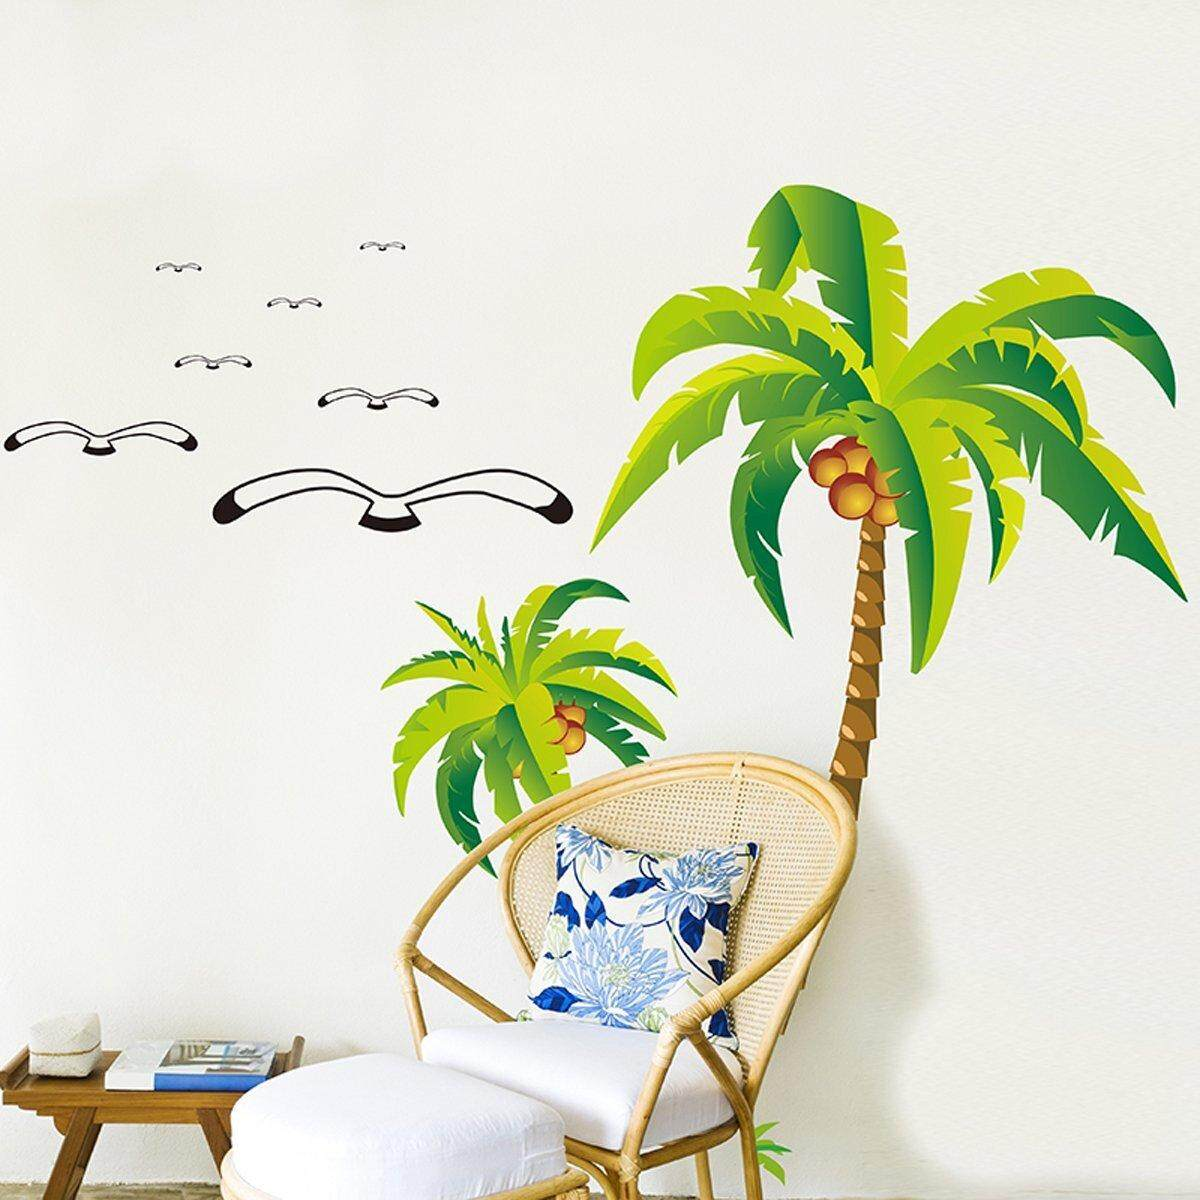 Tropical Coconut Palm Tree Removable PVC Wall Sticker Decal Art Mural Home Decor